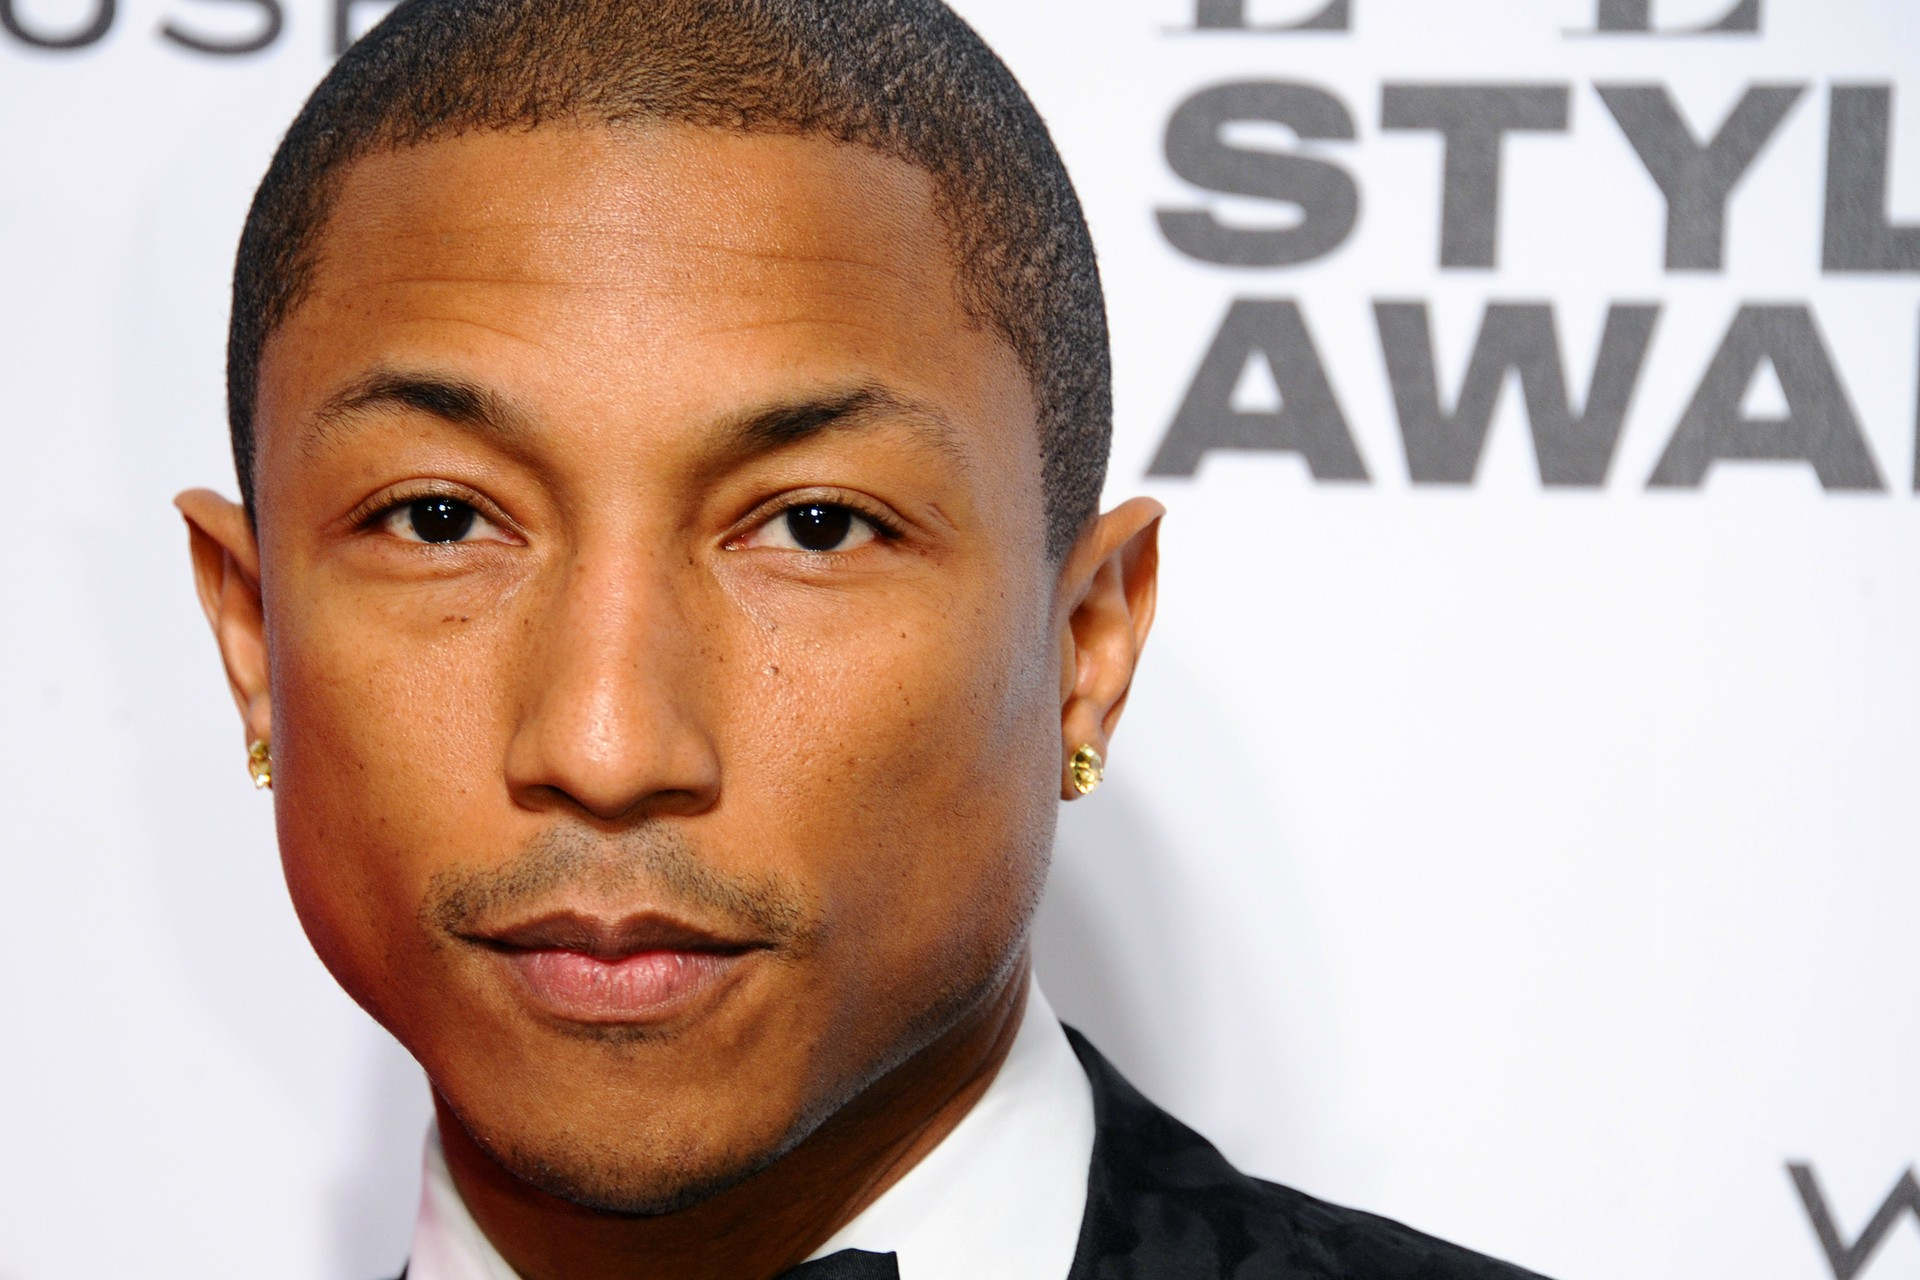 O cantor Pharrell Williams tem 40 anos. (Foto: Getty Images)